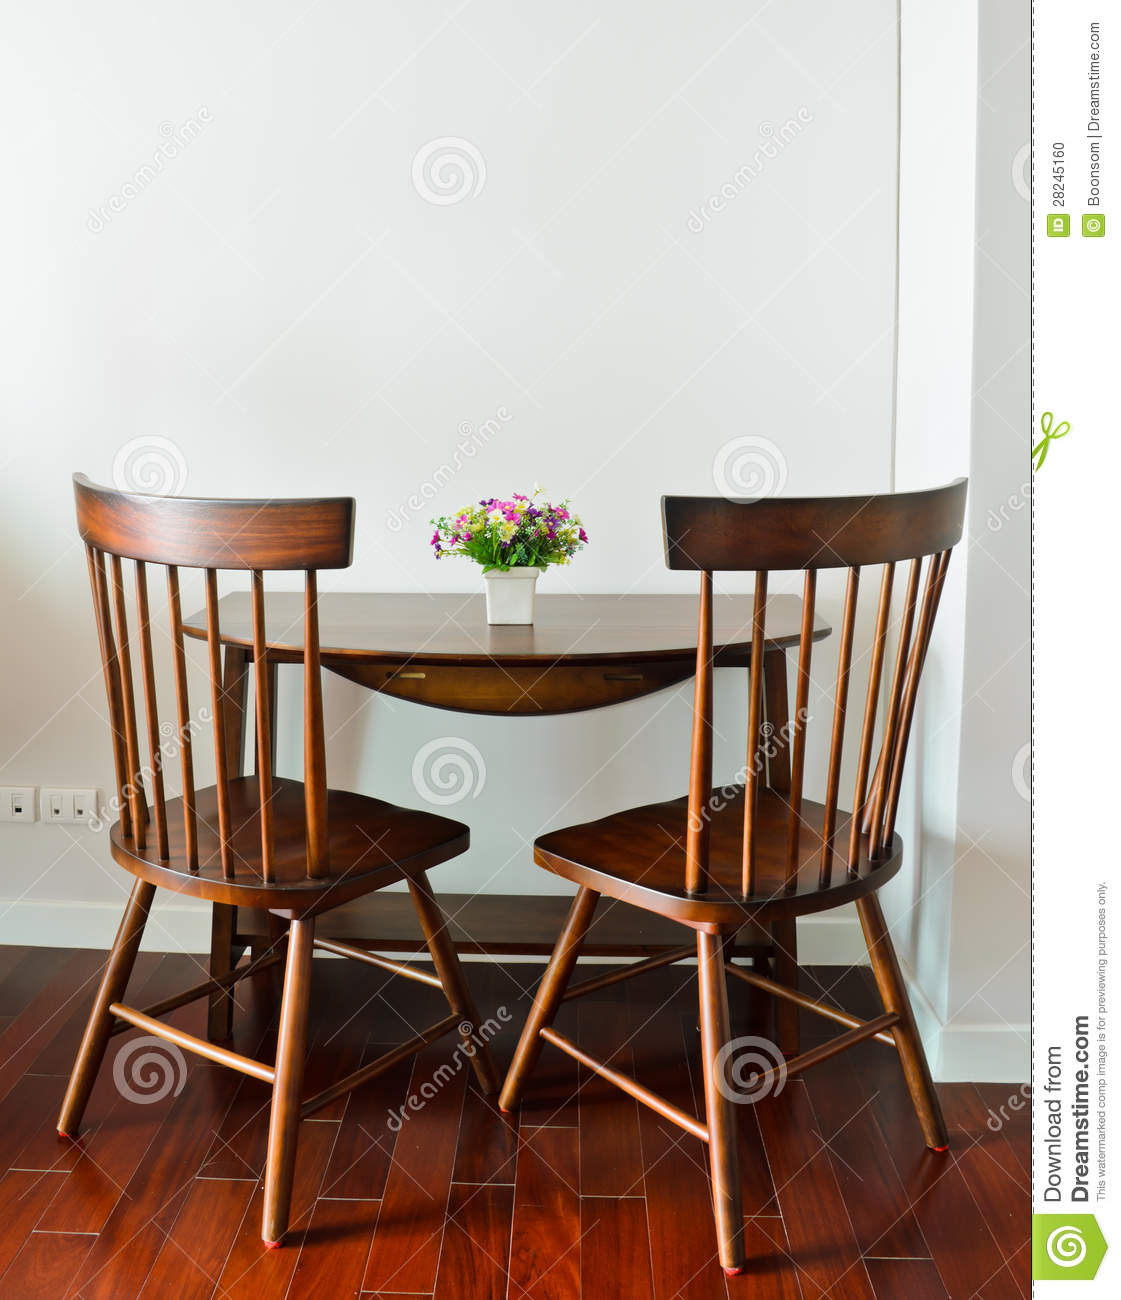 petite table de salle manger photo stock image 28245160. Black Bedroom Furniture Sets. Home Design Ideas